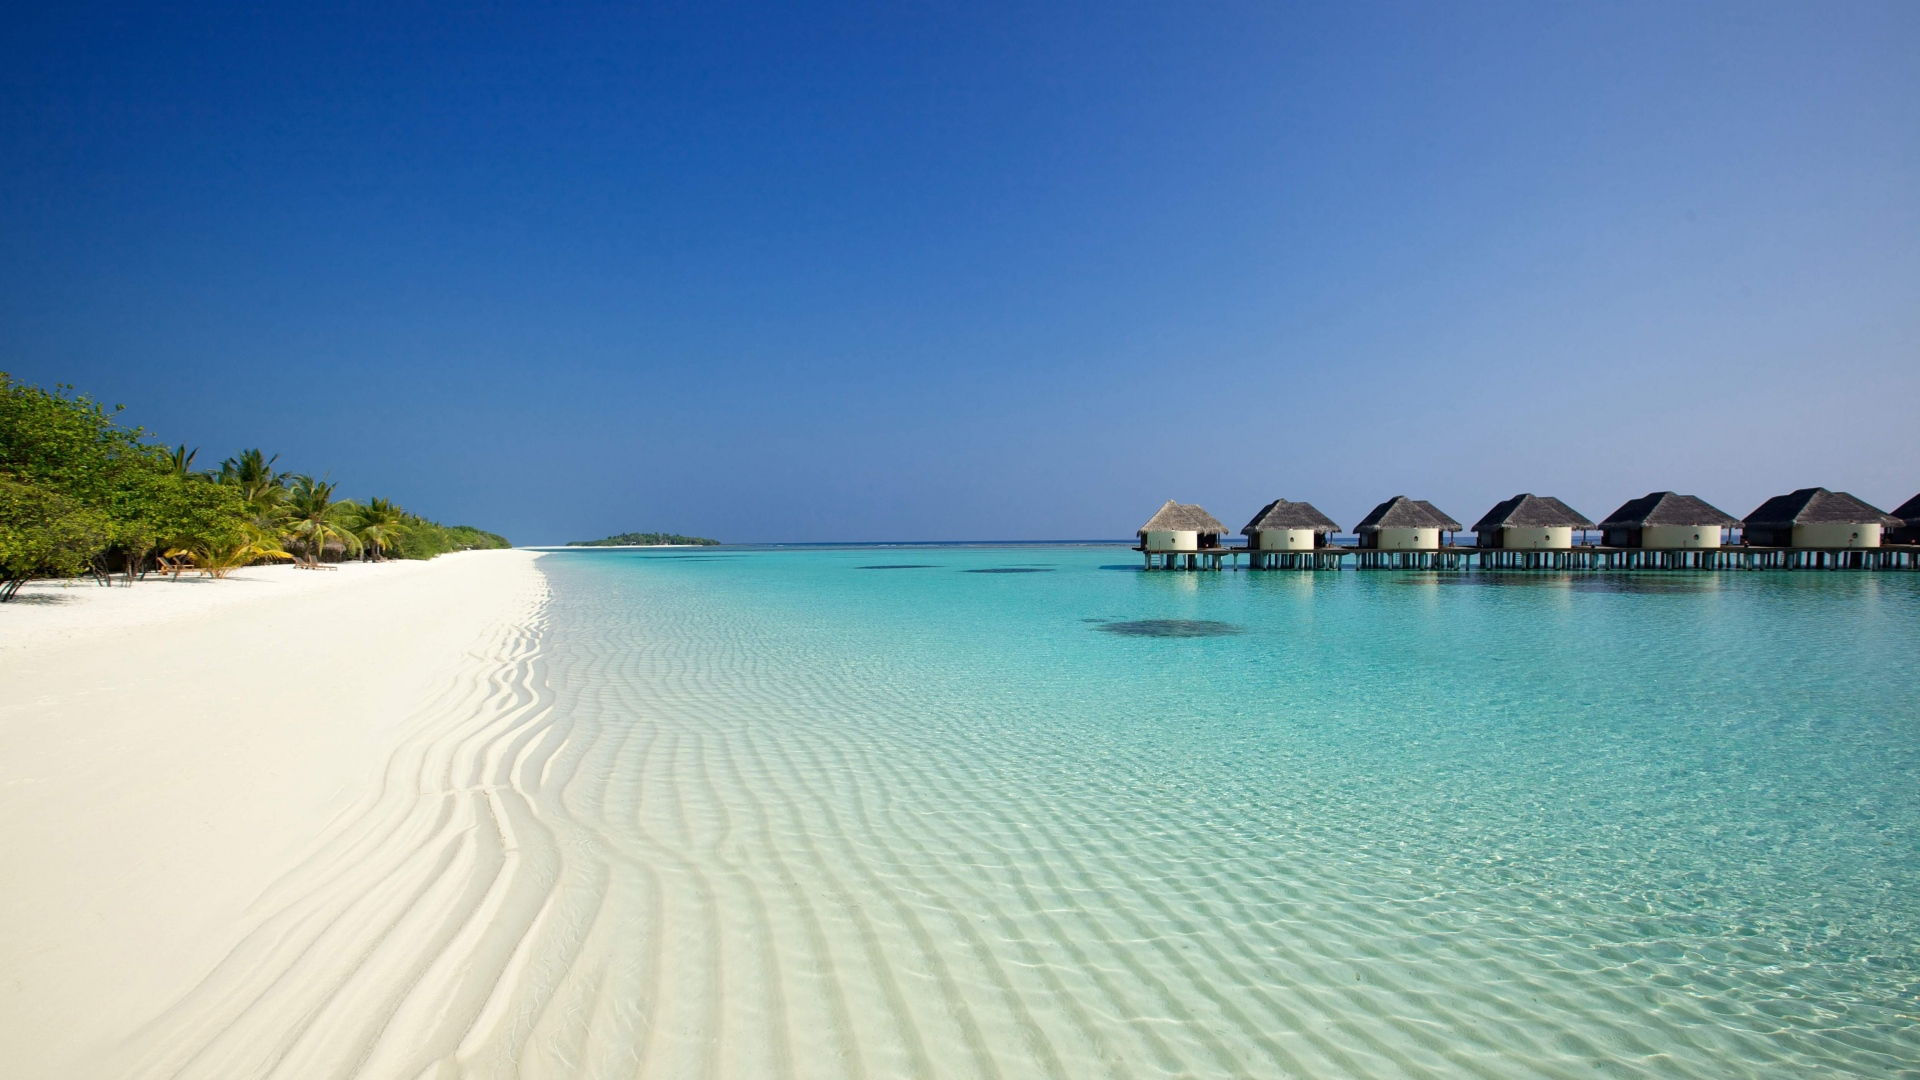 beach-ocean-sand-palm-trees-and-bungalows-1920x1080-Need-iPhone-S-Plus-Background-wallpaper-wp3402958